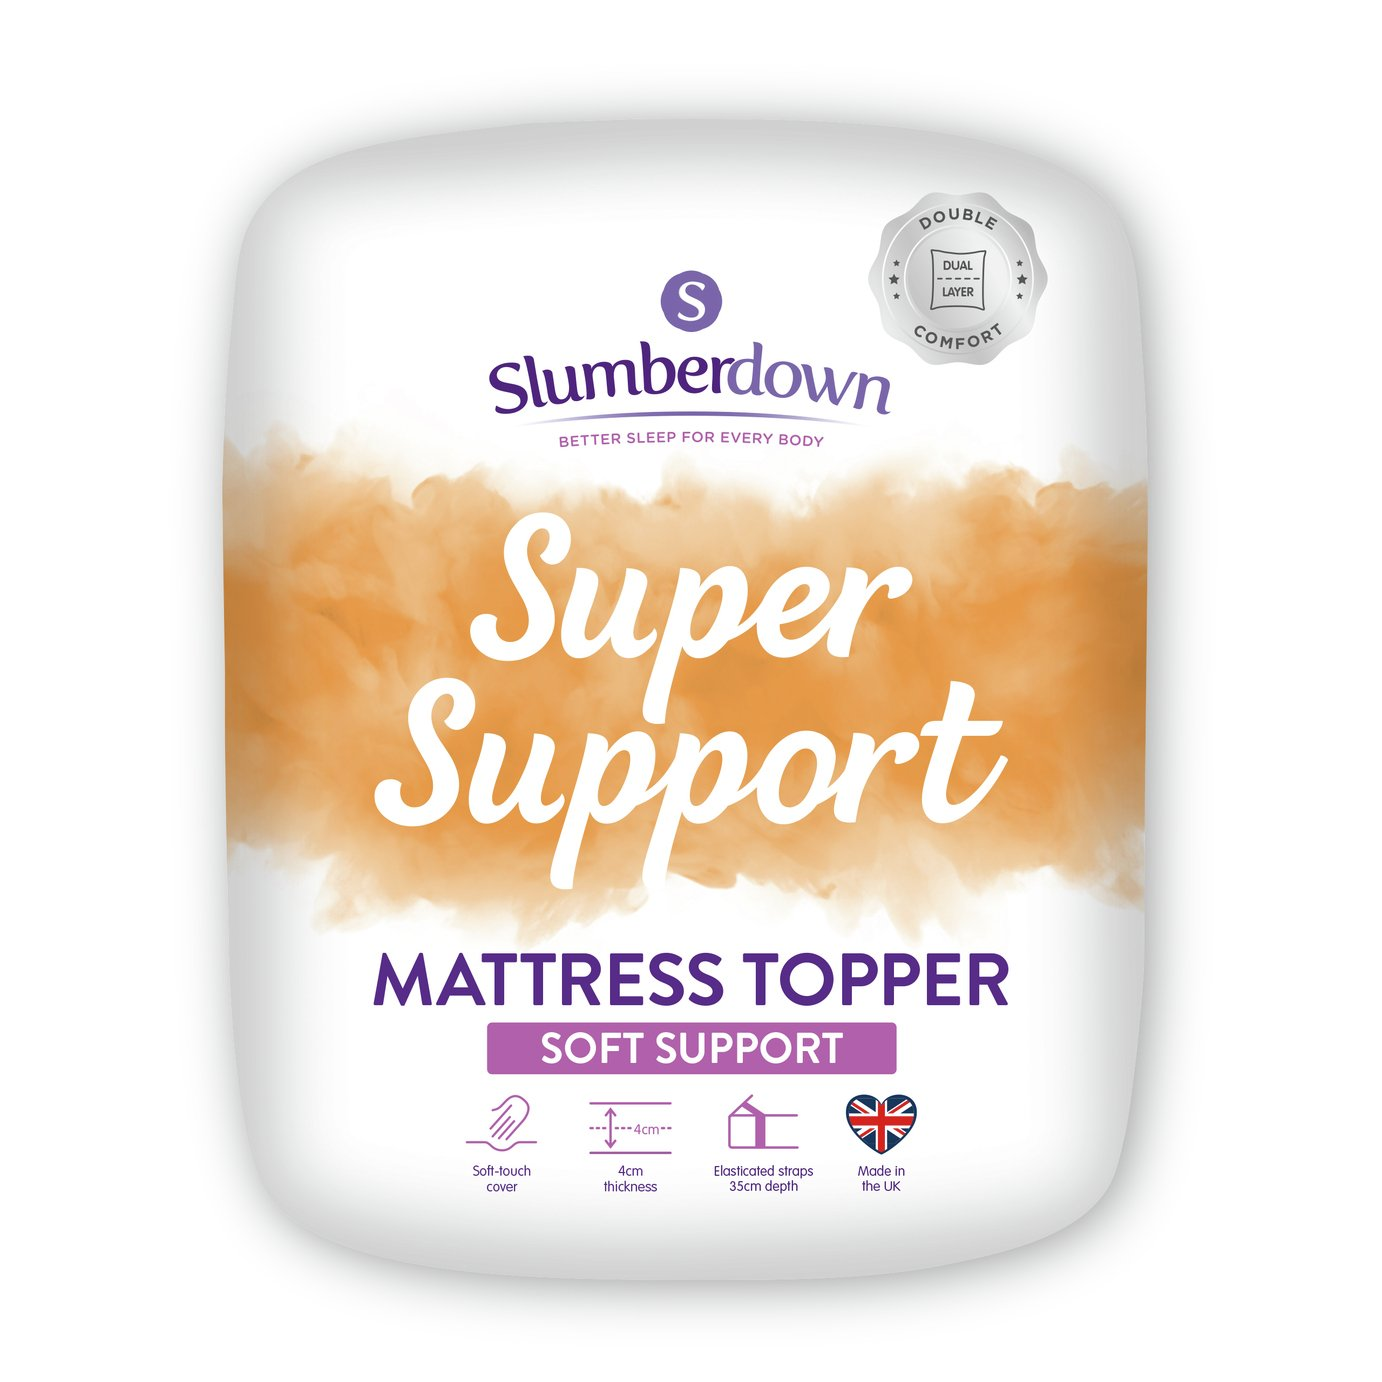 Argos Mattress Topper King Size Slumberdown Support 5cm Mattress Topper Kingsize